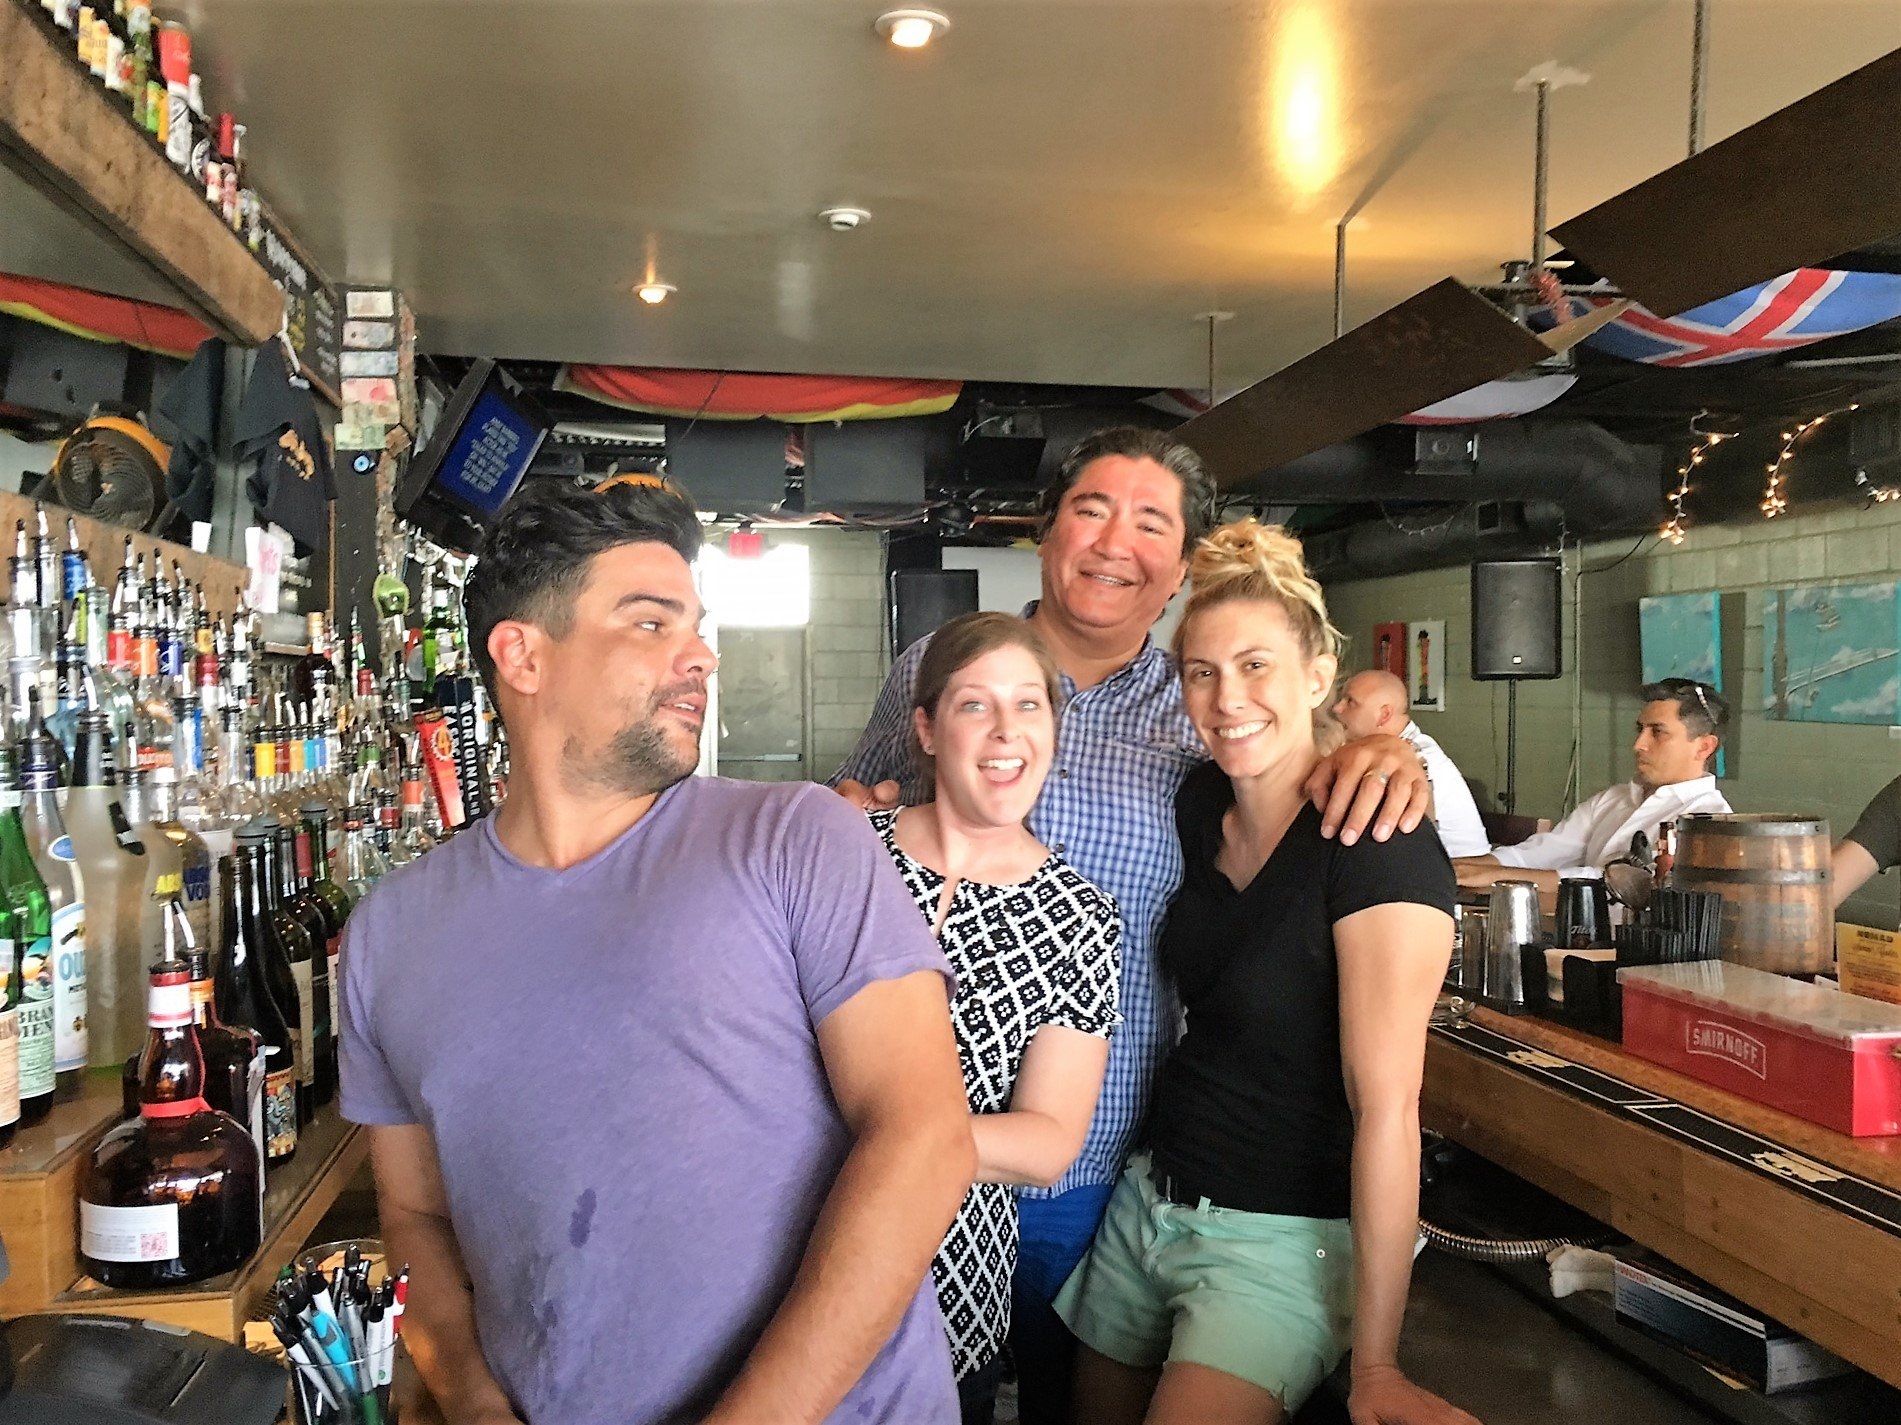 Knomad, Bar in Windsor Park, meet the Owner and Operator Miguel Jimenez - Parkbench